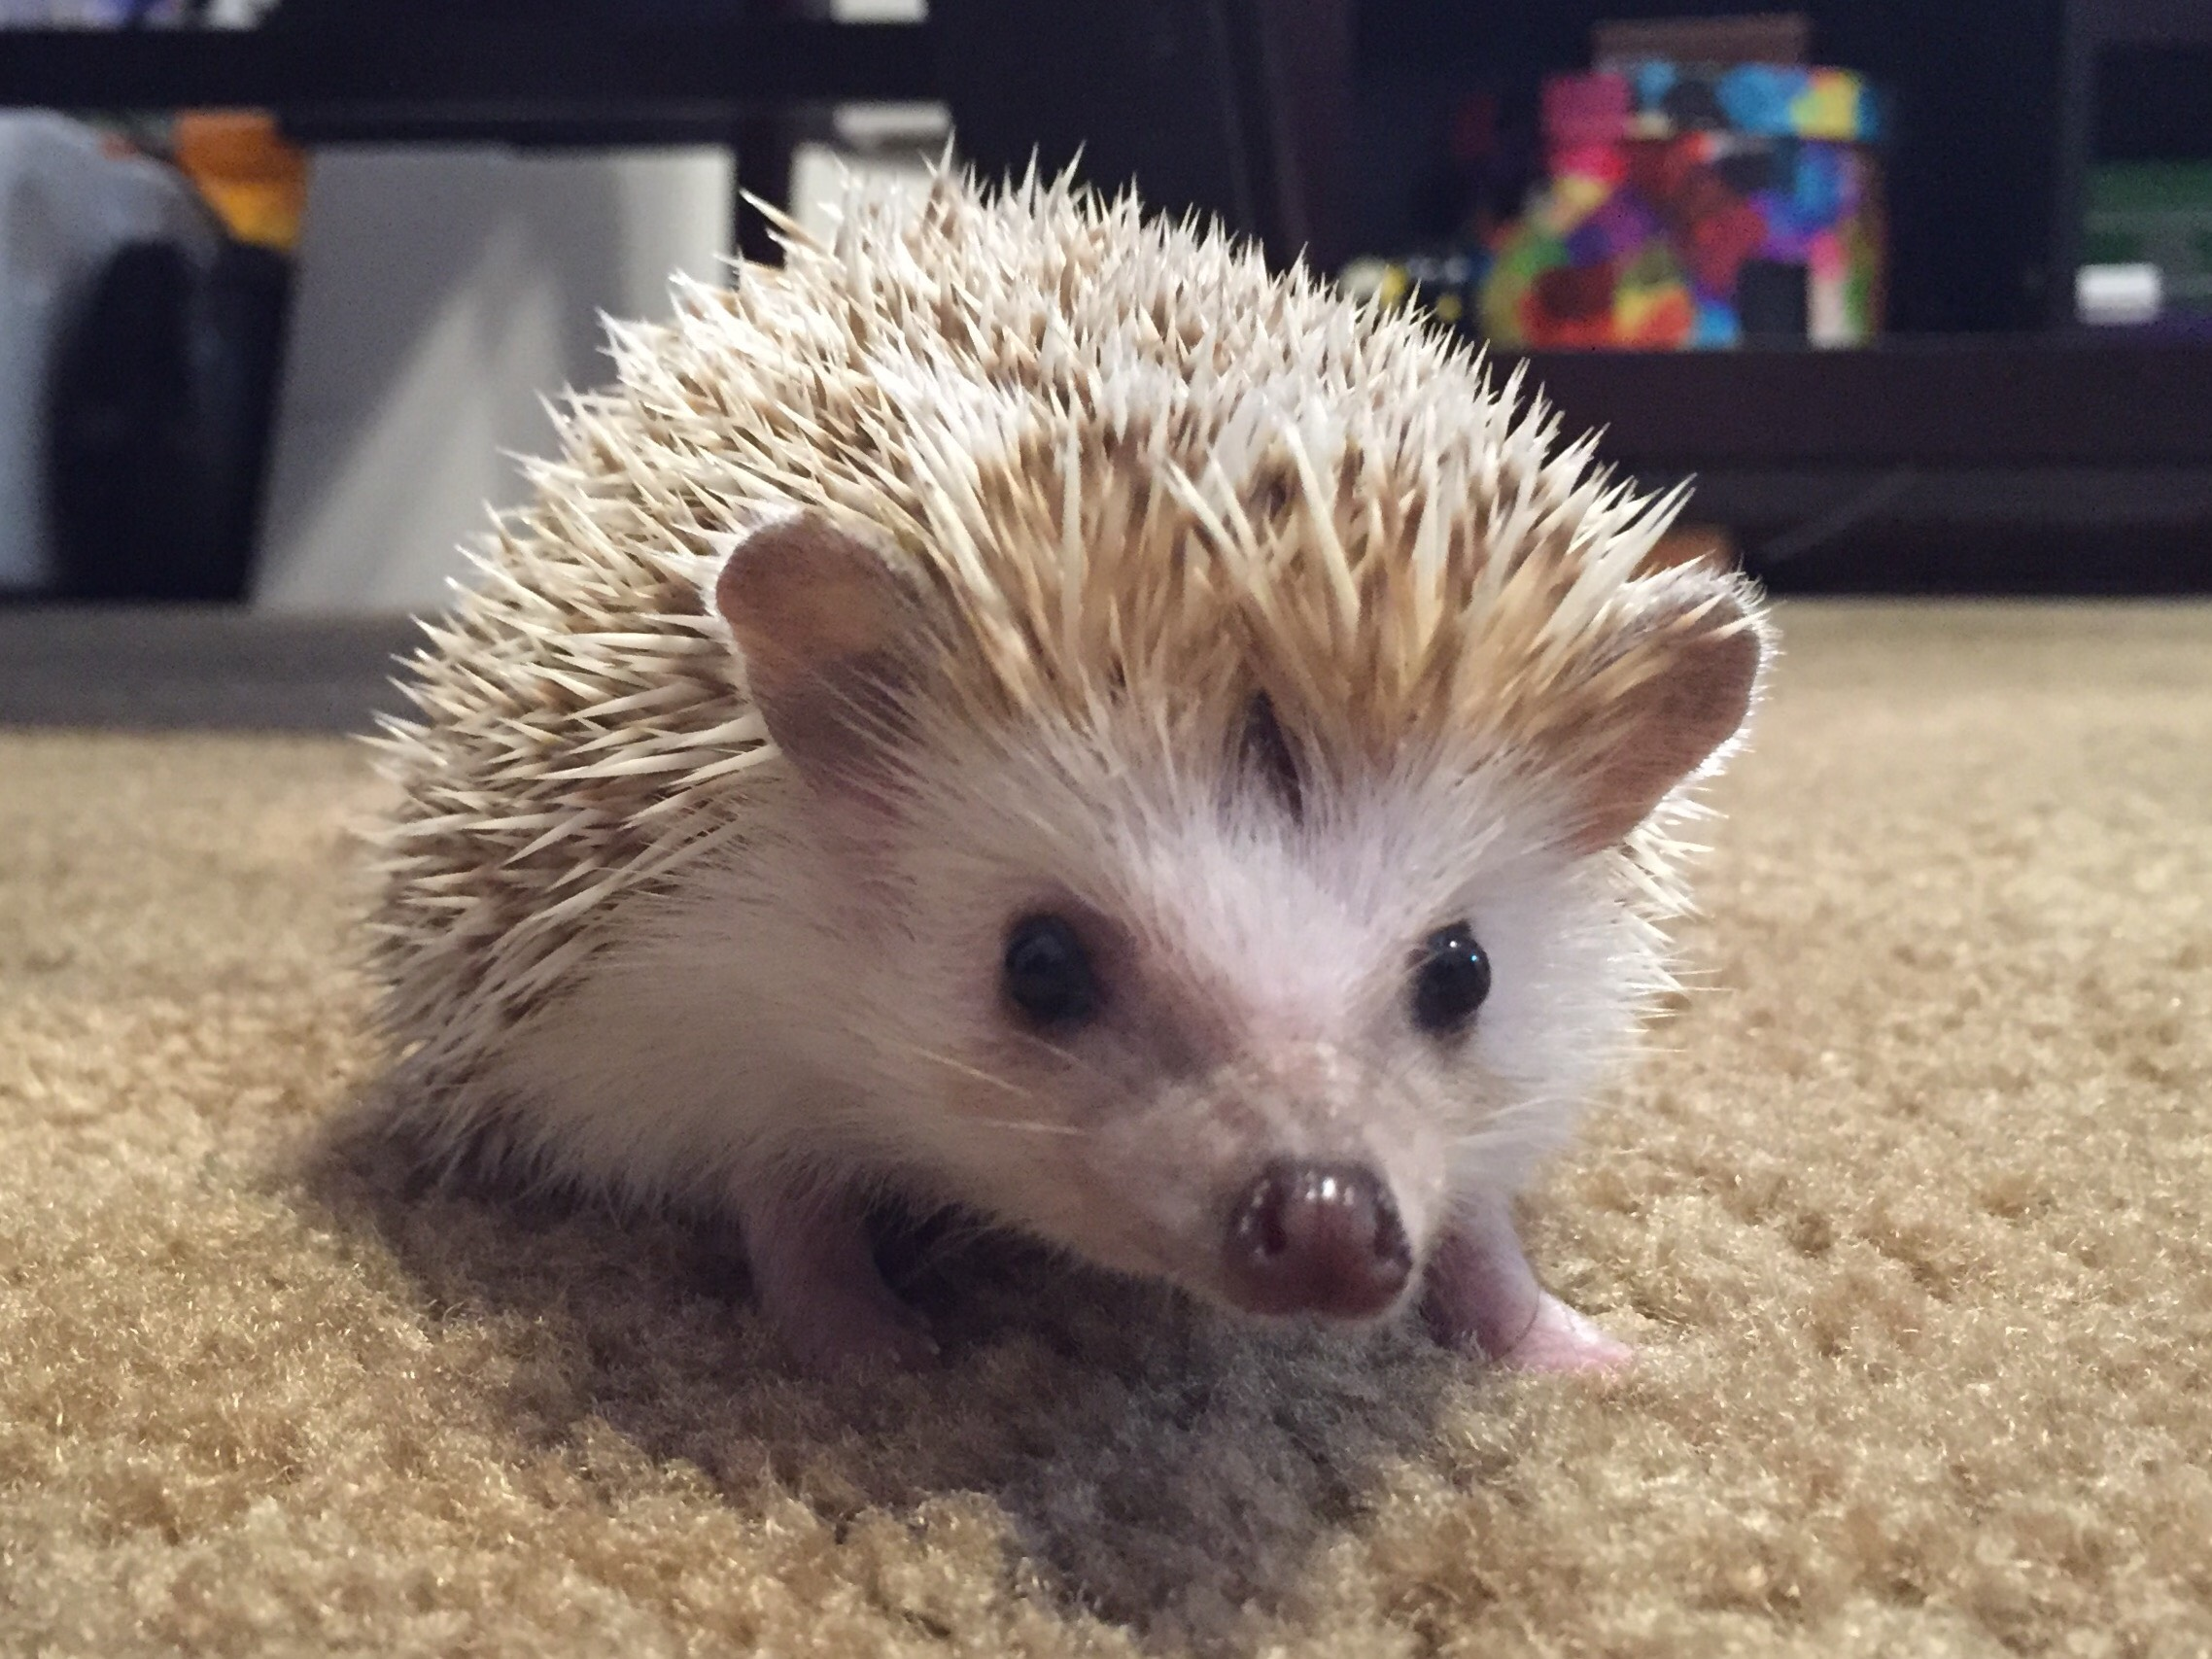 Kim Engles White Hedgehog photo.JPG